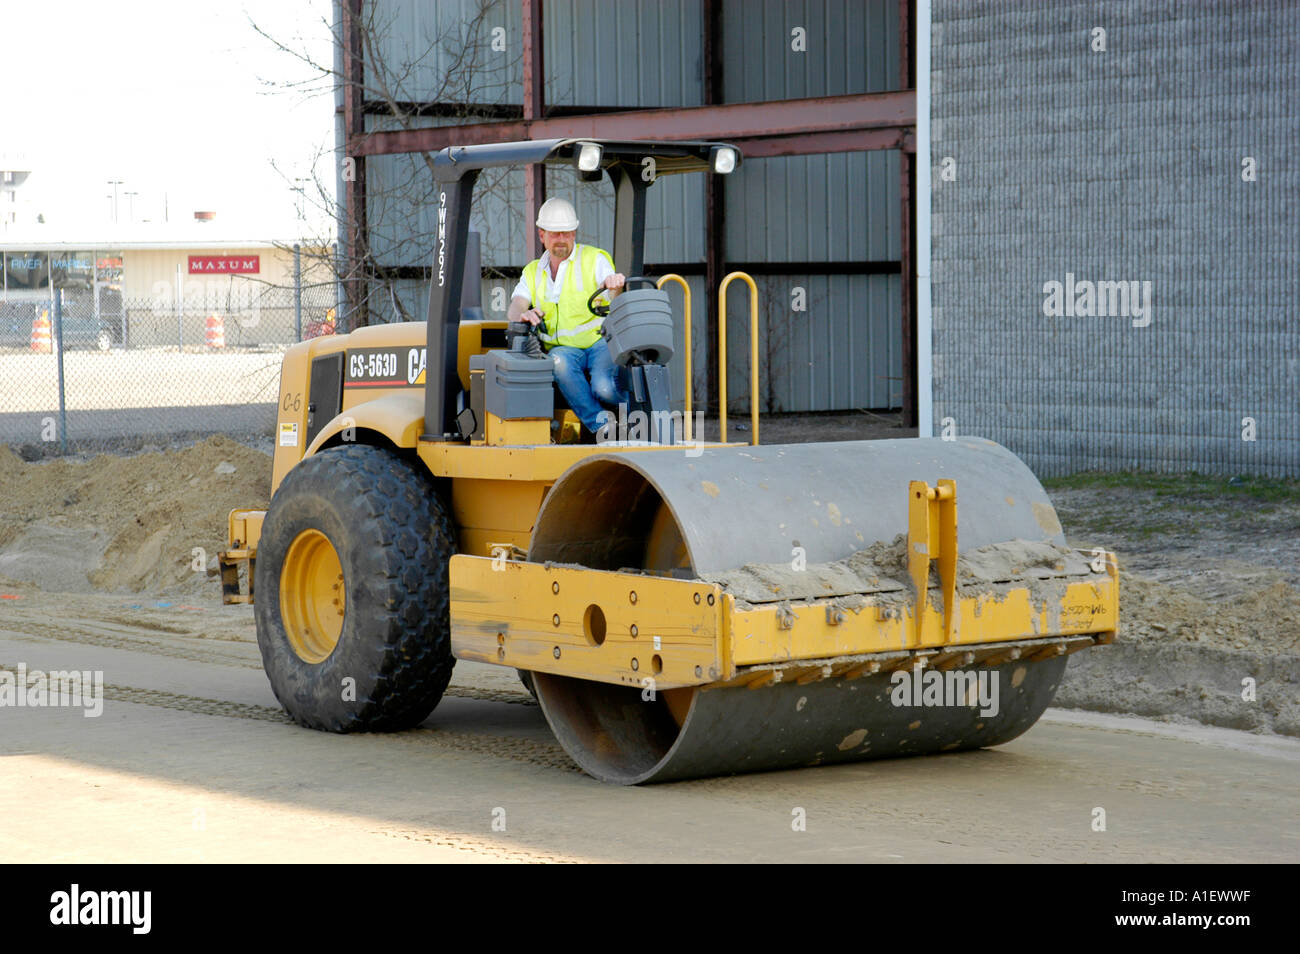 heavy equipment and manual labor us used in road repair and new rh alamy com heavy equipment manual download heavy equipment manuals for grove rt58